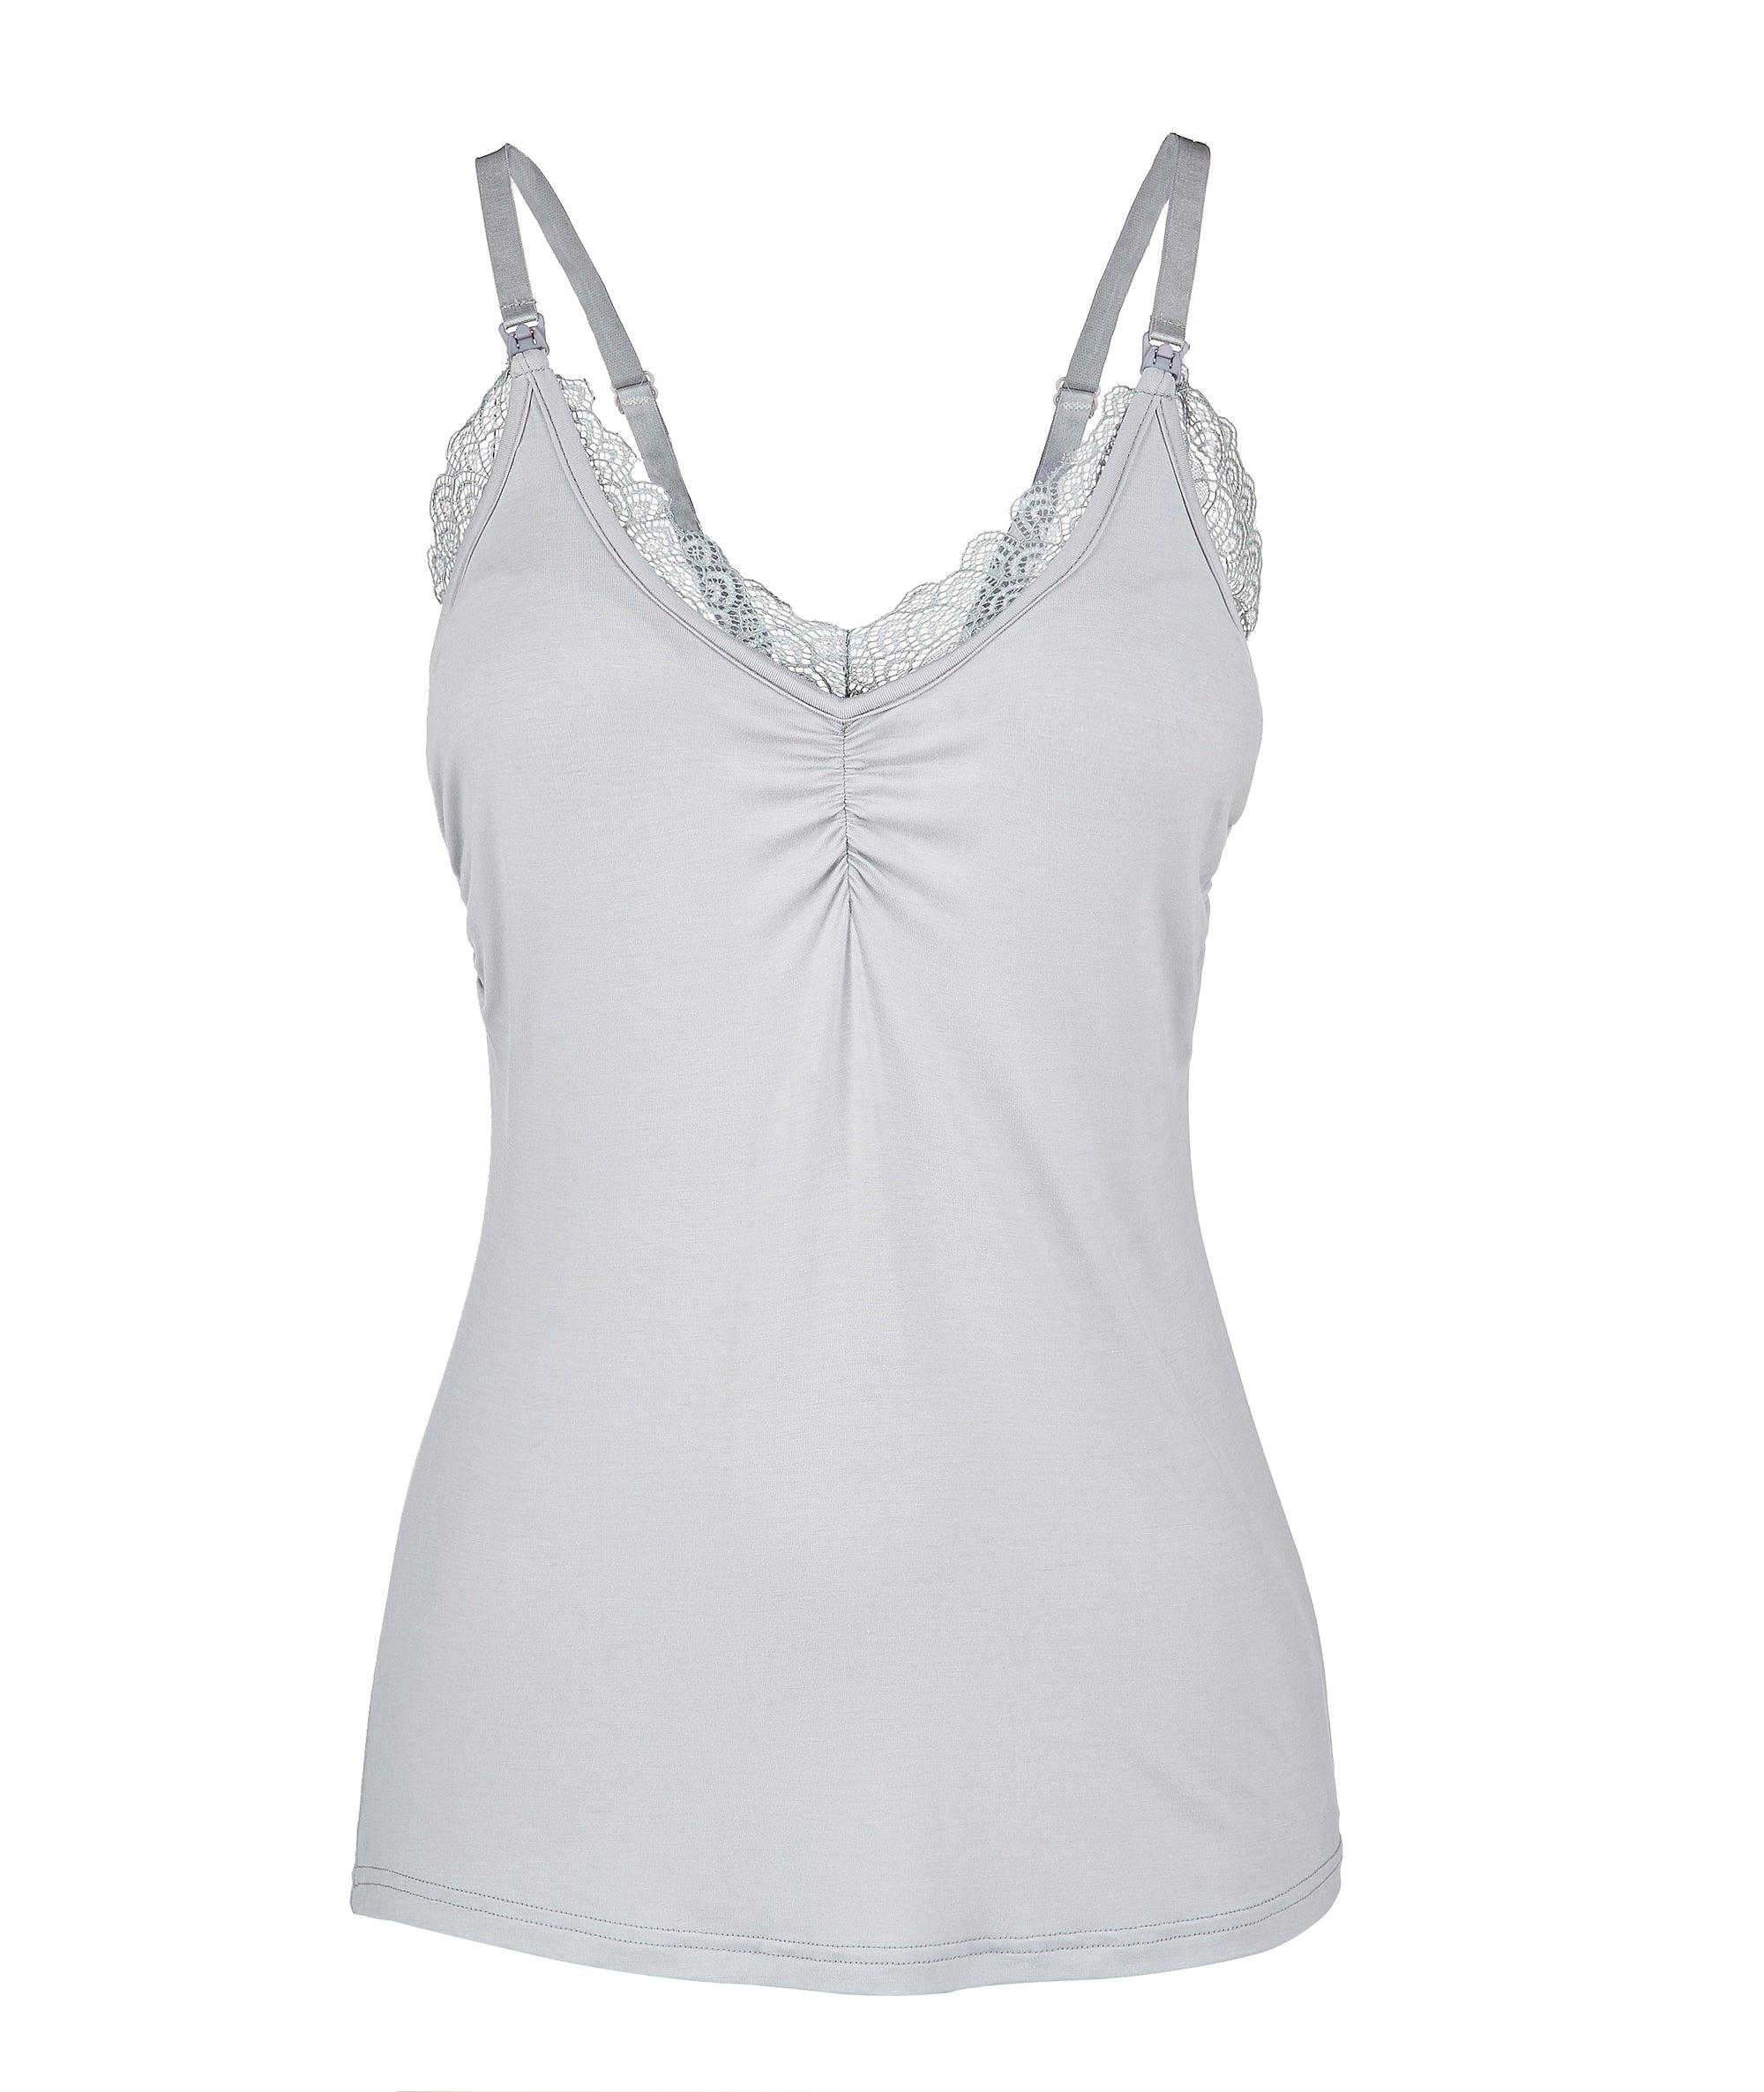 Glowing Grey Lace Nursing Camisole